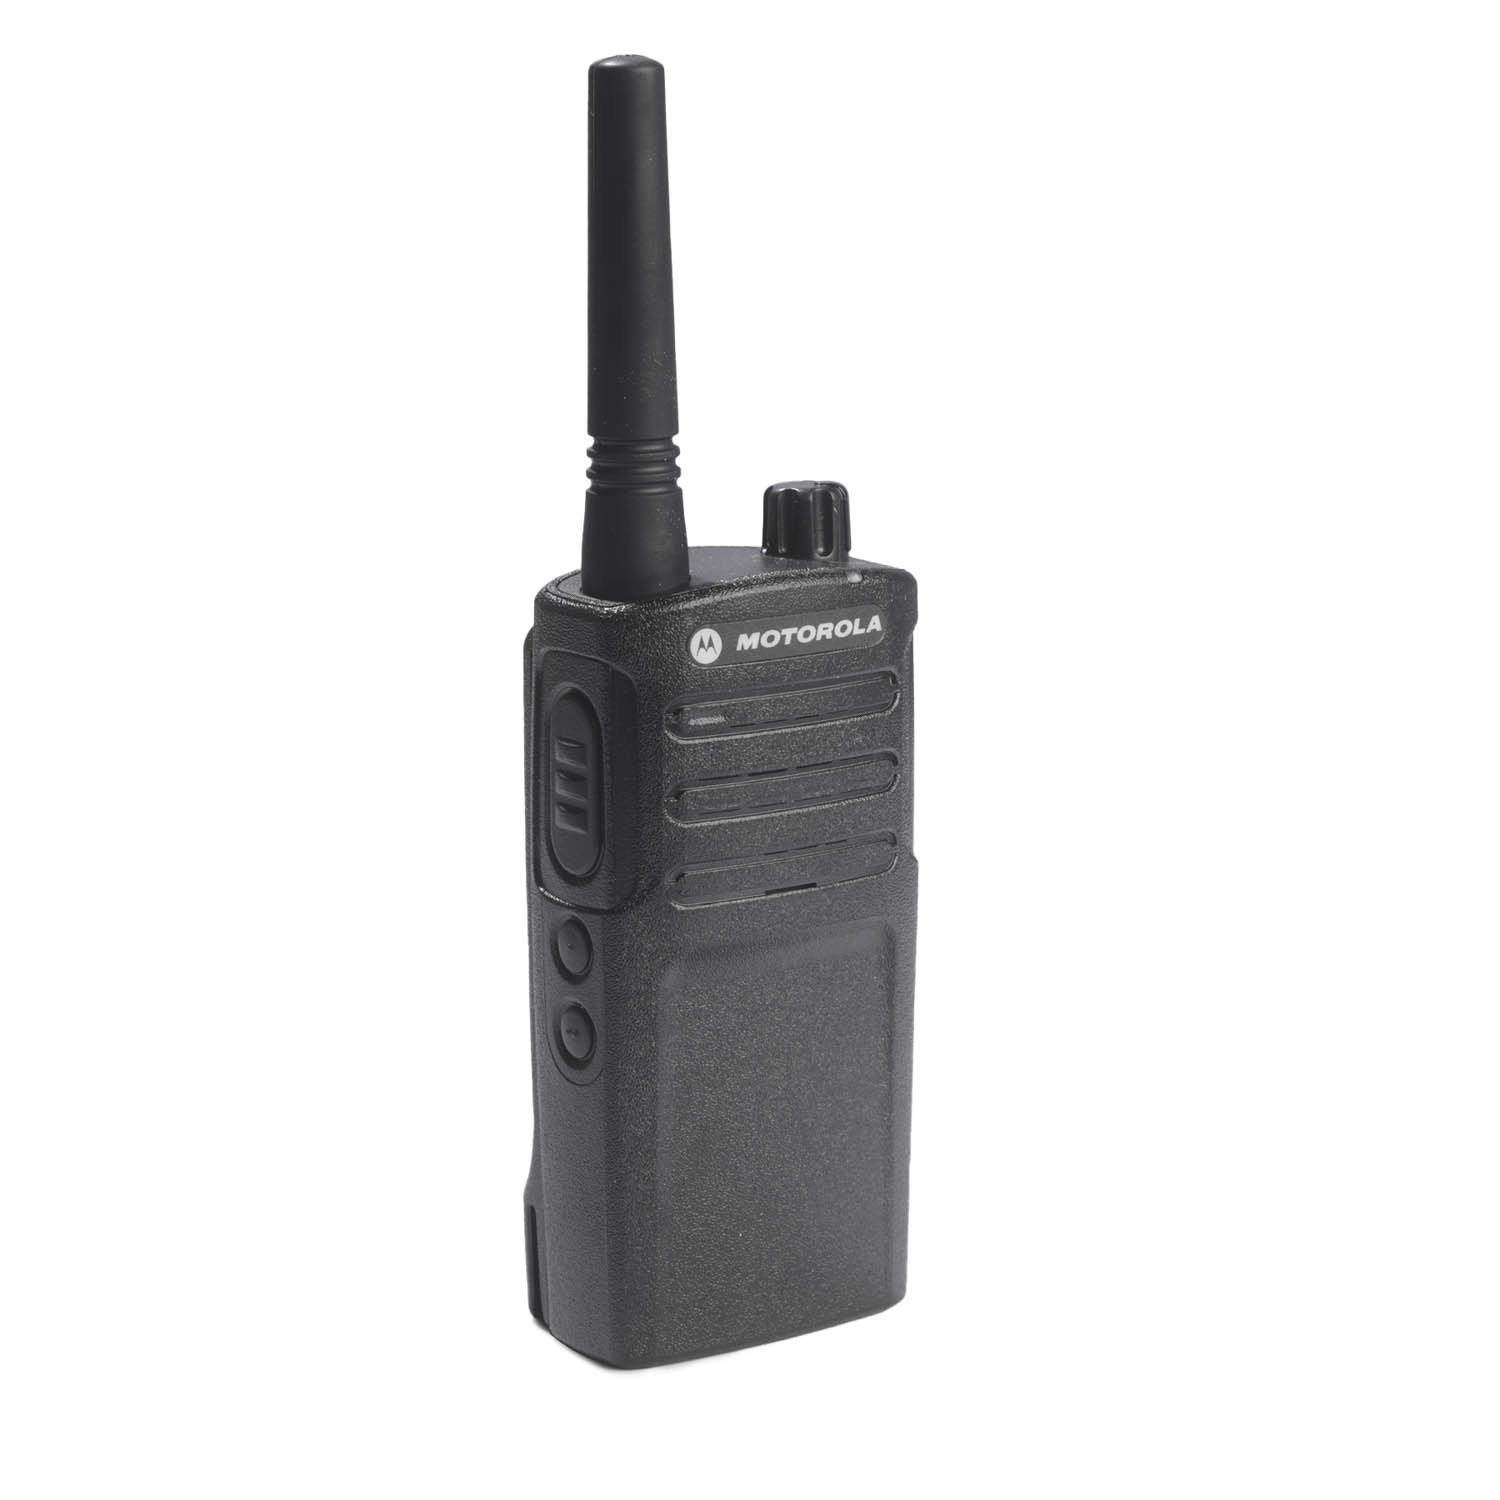 Motorola RMU2040 UHF 4 Channel Radio